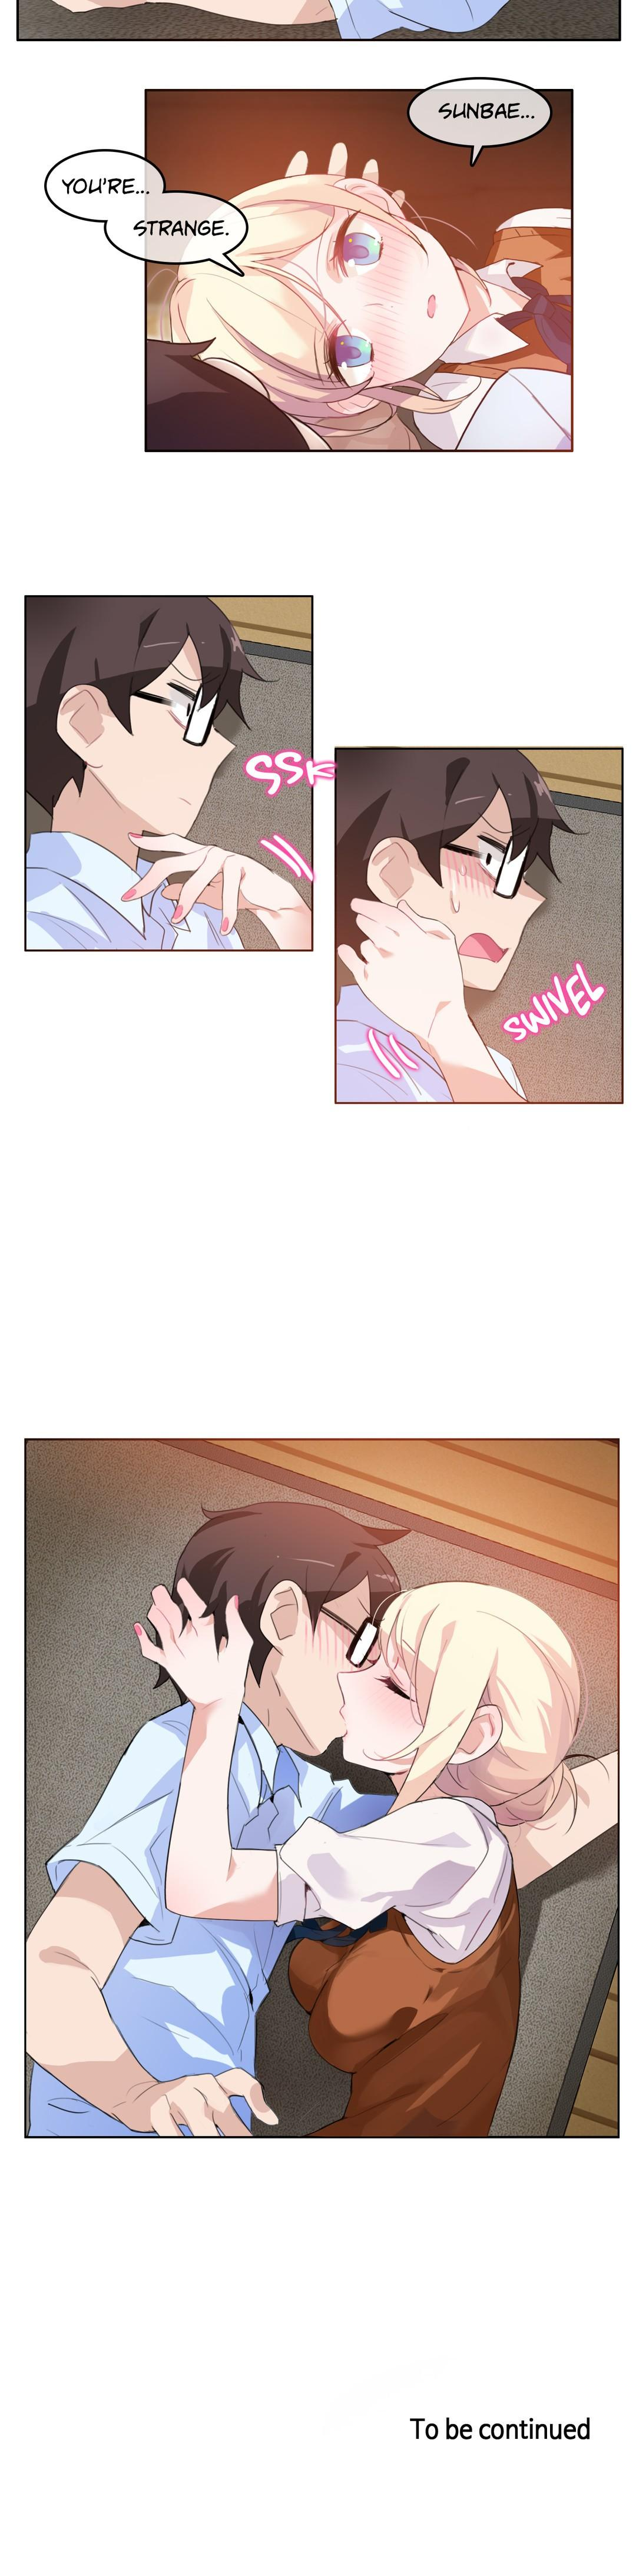 A Pervert's Daily Life Ch. 1-34 195